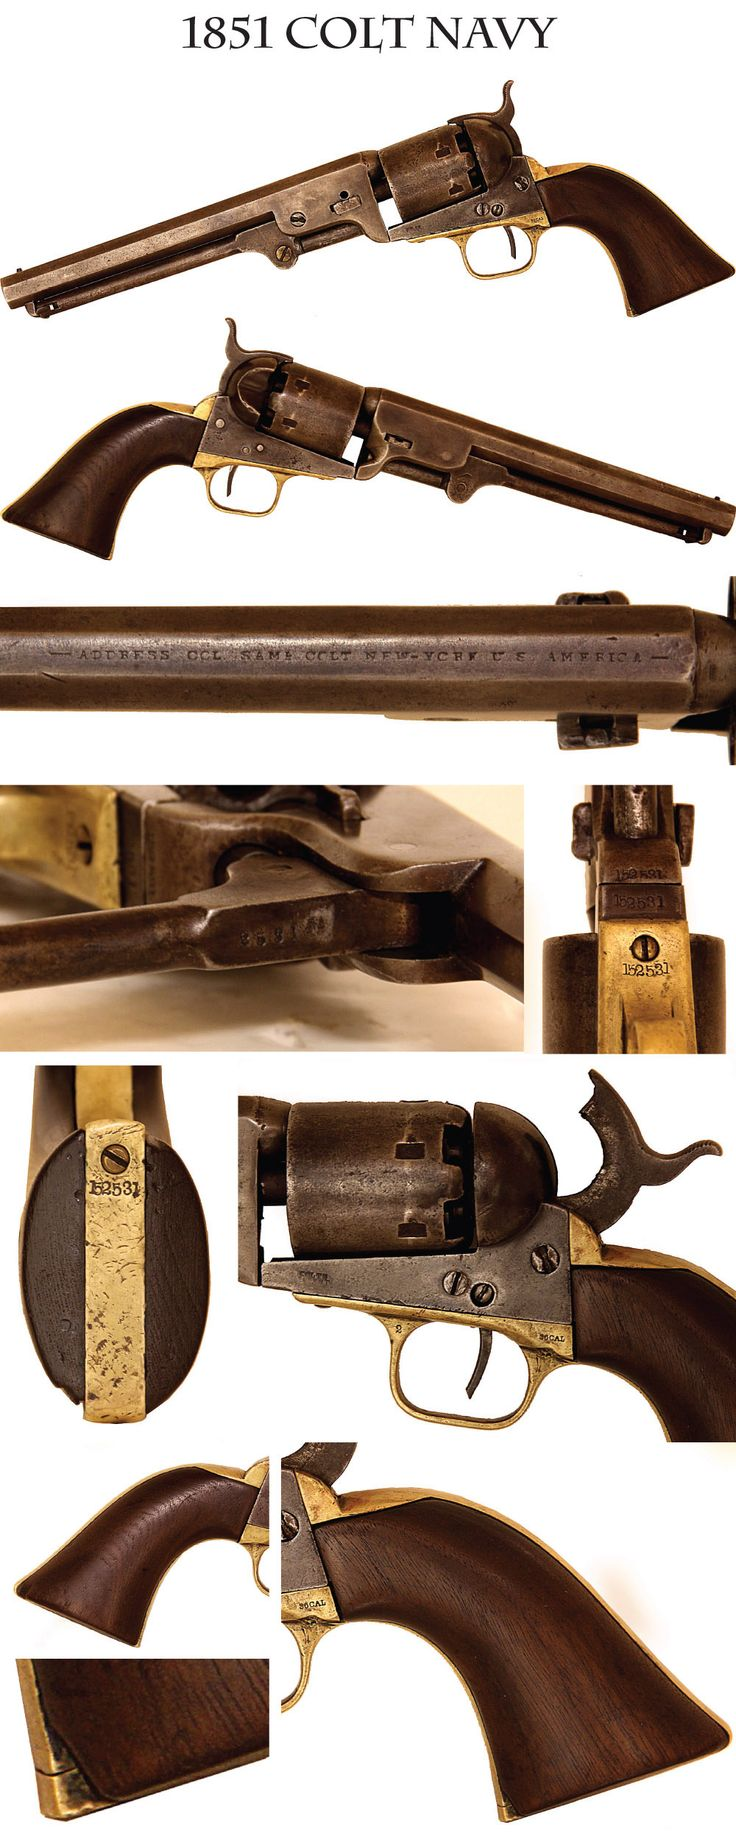 Teddy roosevelt guns to be displayed at nra national - Find This Pin And More On Firearms Of The Old West